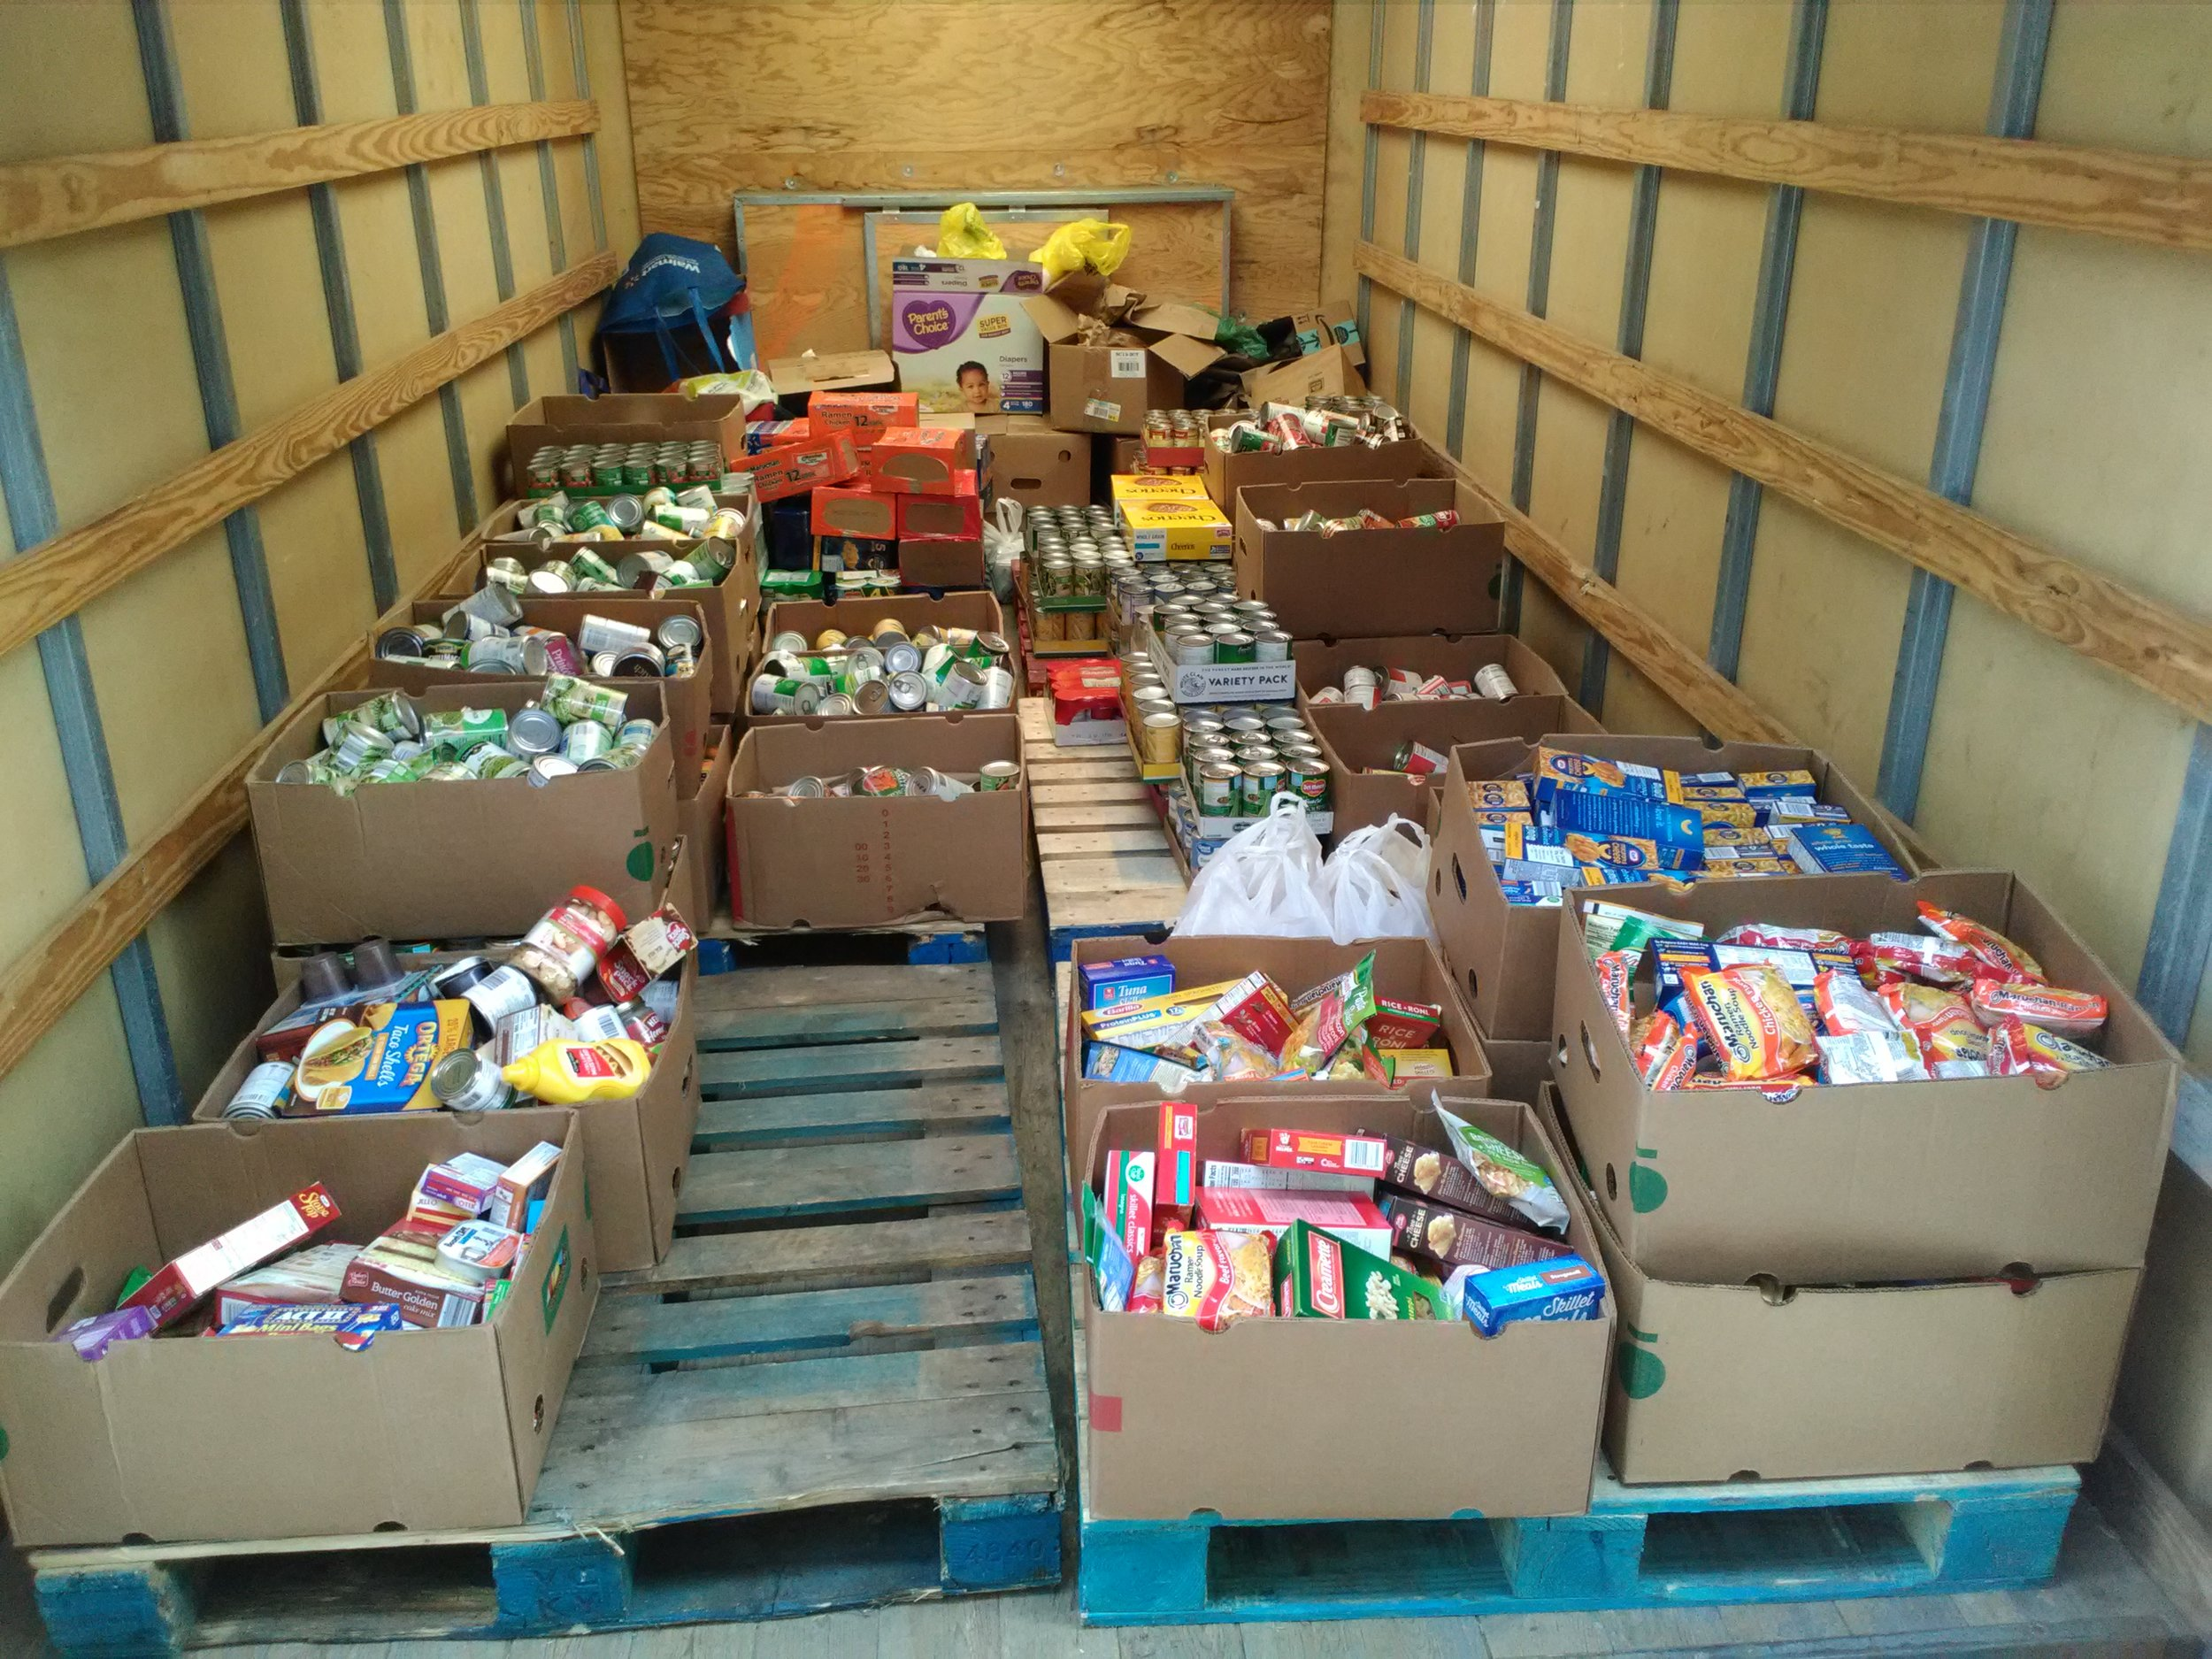 The Vesper Volunteer Fire Department collected food at their annual Sportsmen Dinner.  The donations pictured above came to 2171.5 pounds of food.  These donations will greatly impact those we serve.  On behalf of those whose lives will be impacted, thank you to all those who had a part in making this donation happen.